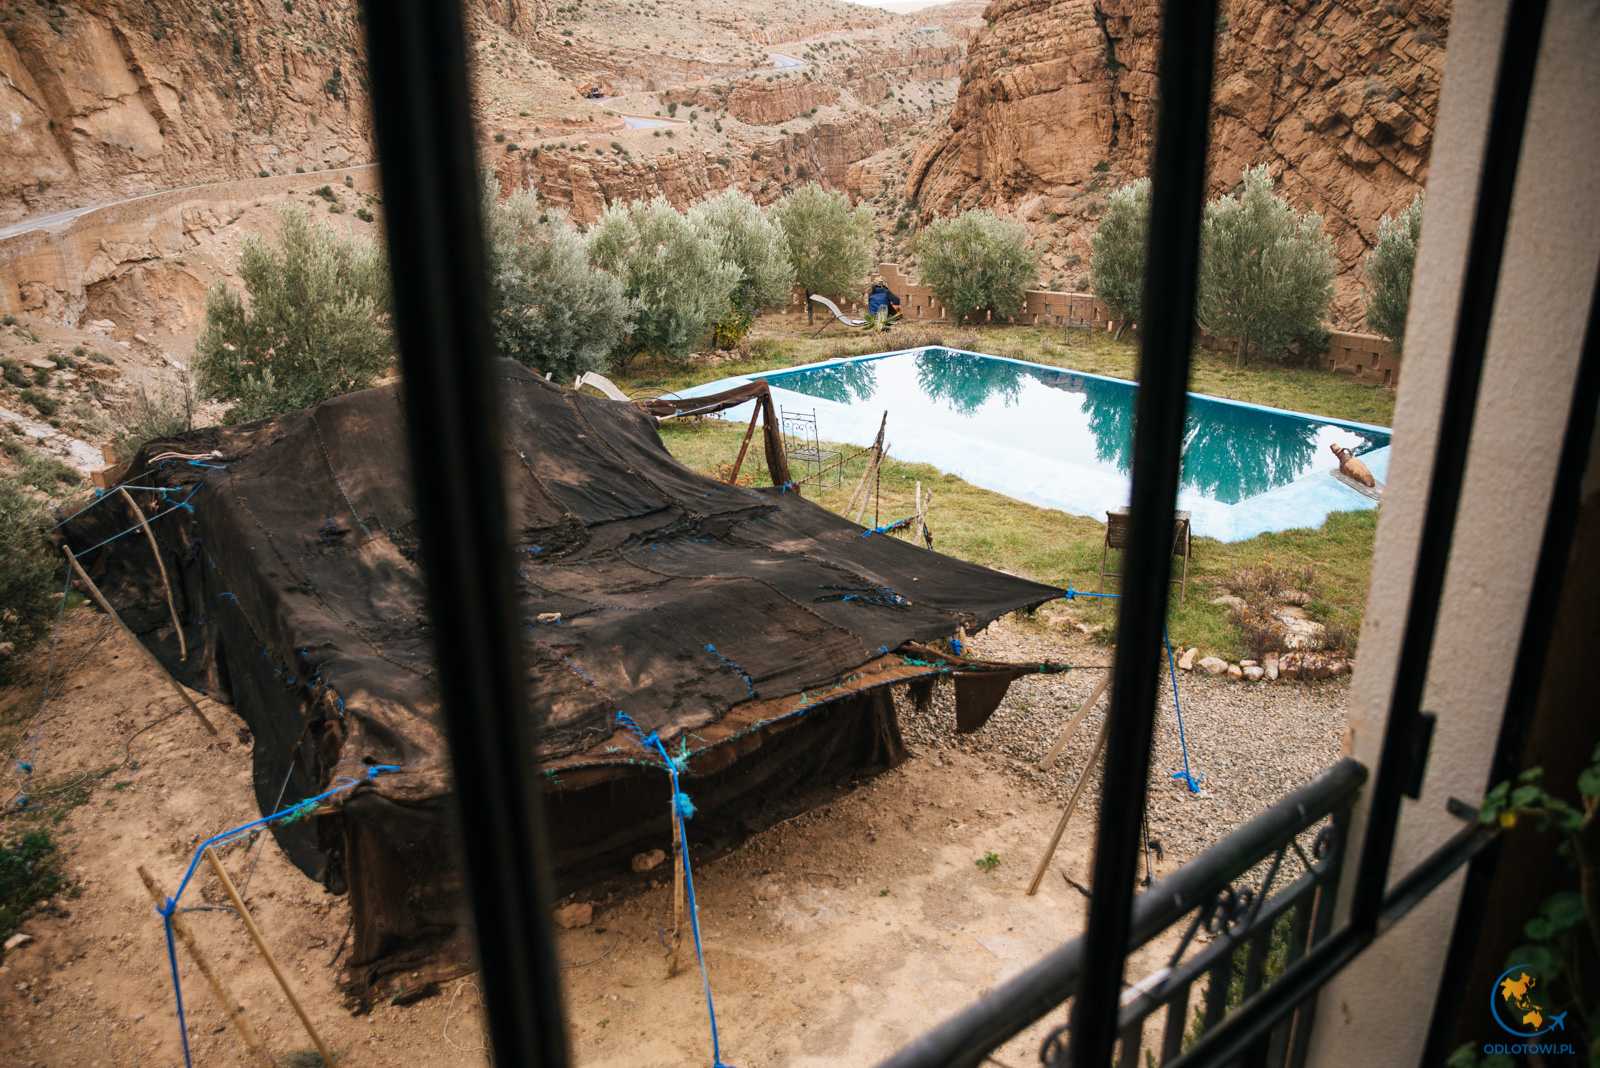 Dades Valley swimming pool | Basen w dolinie Dades - La kasbah de Victor